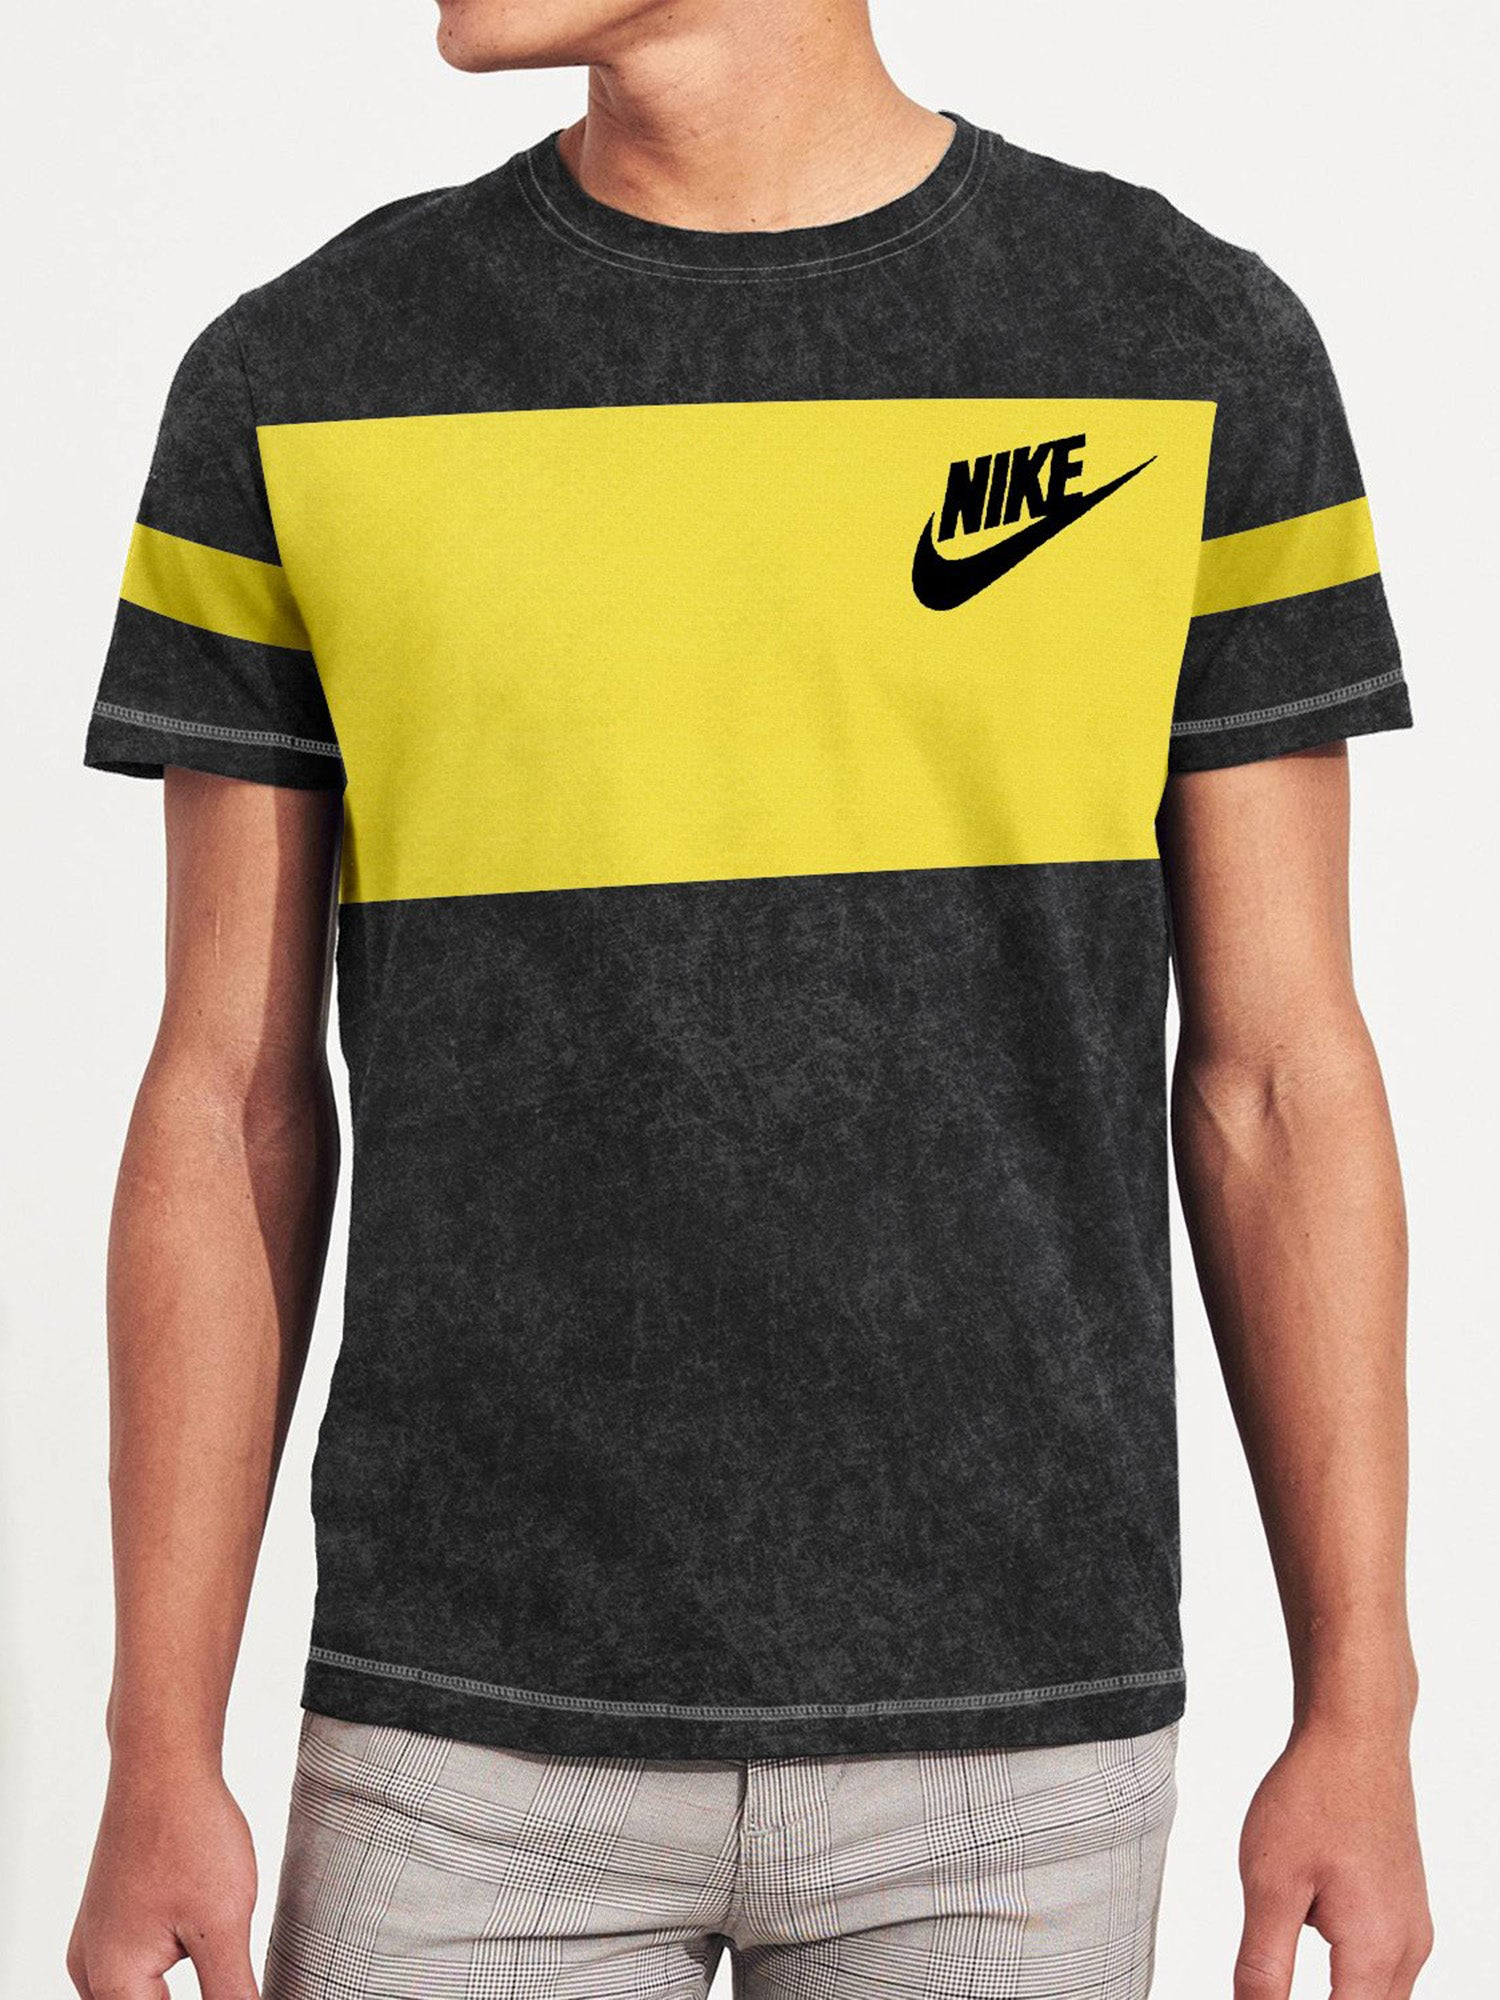 NK Summer Crew Neck Tee Shirt For Men-Black Faded with Yellow Panel-BE12088